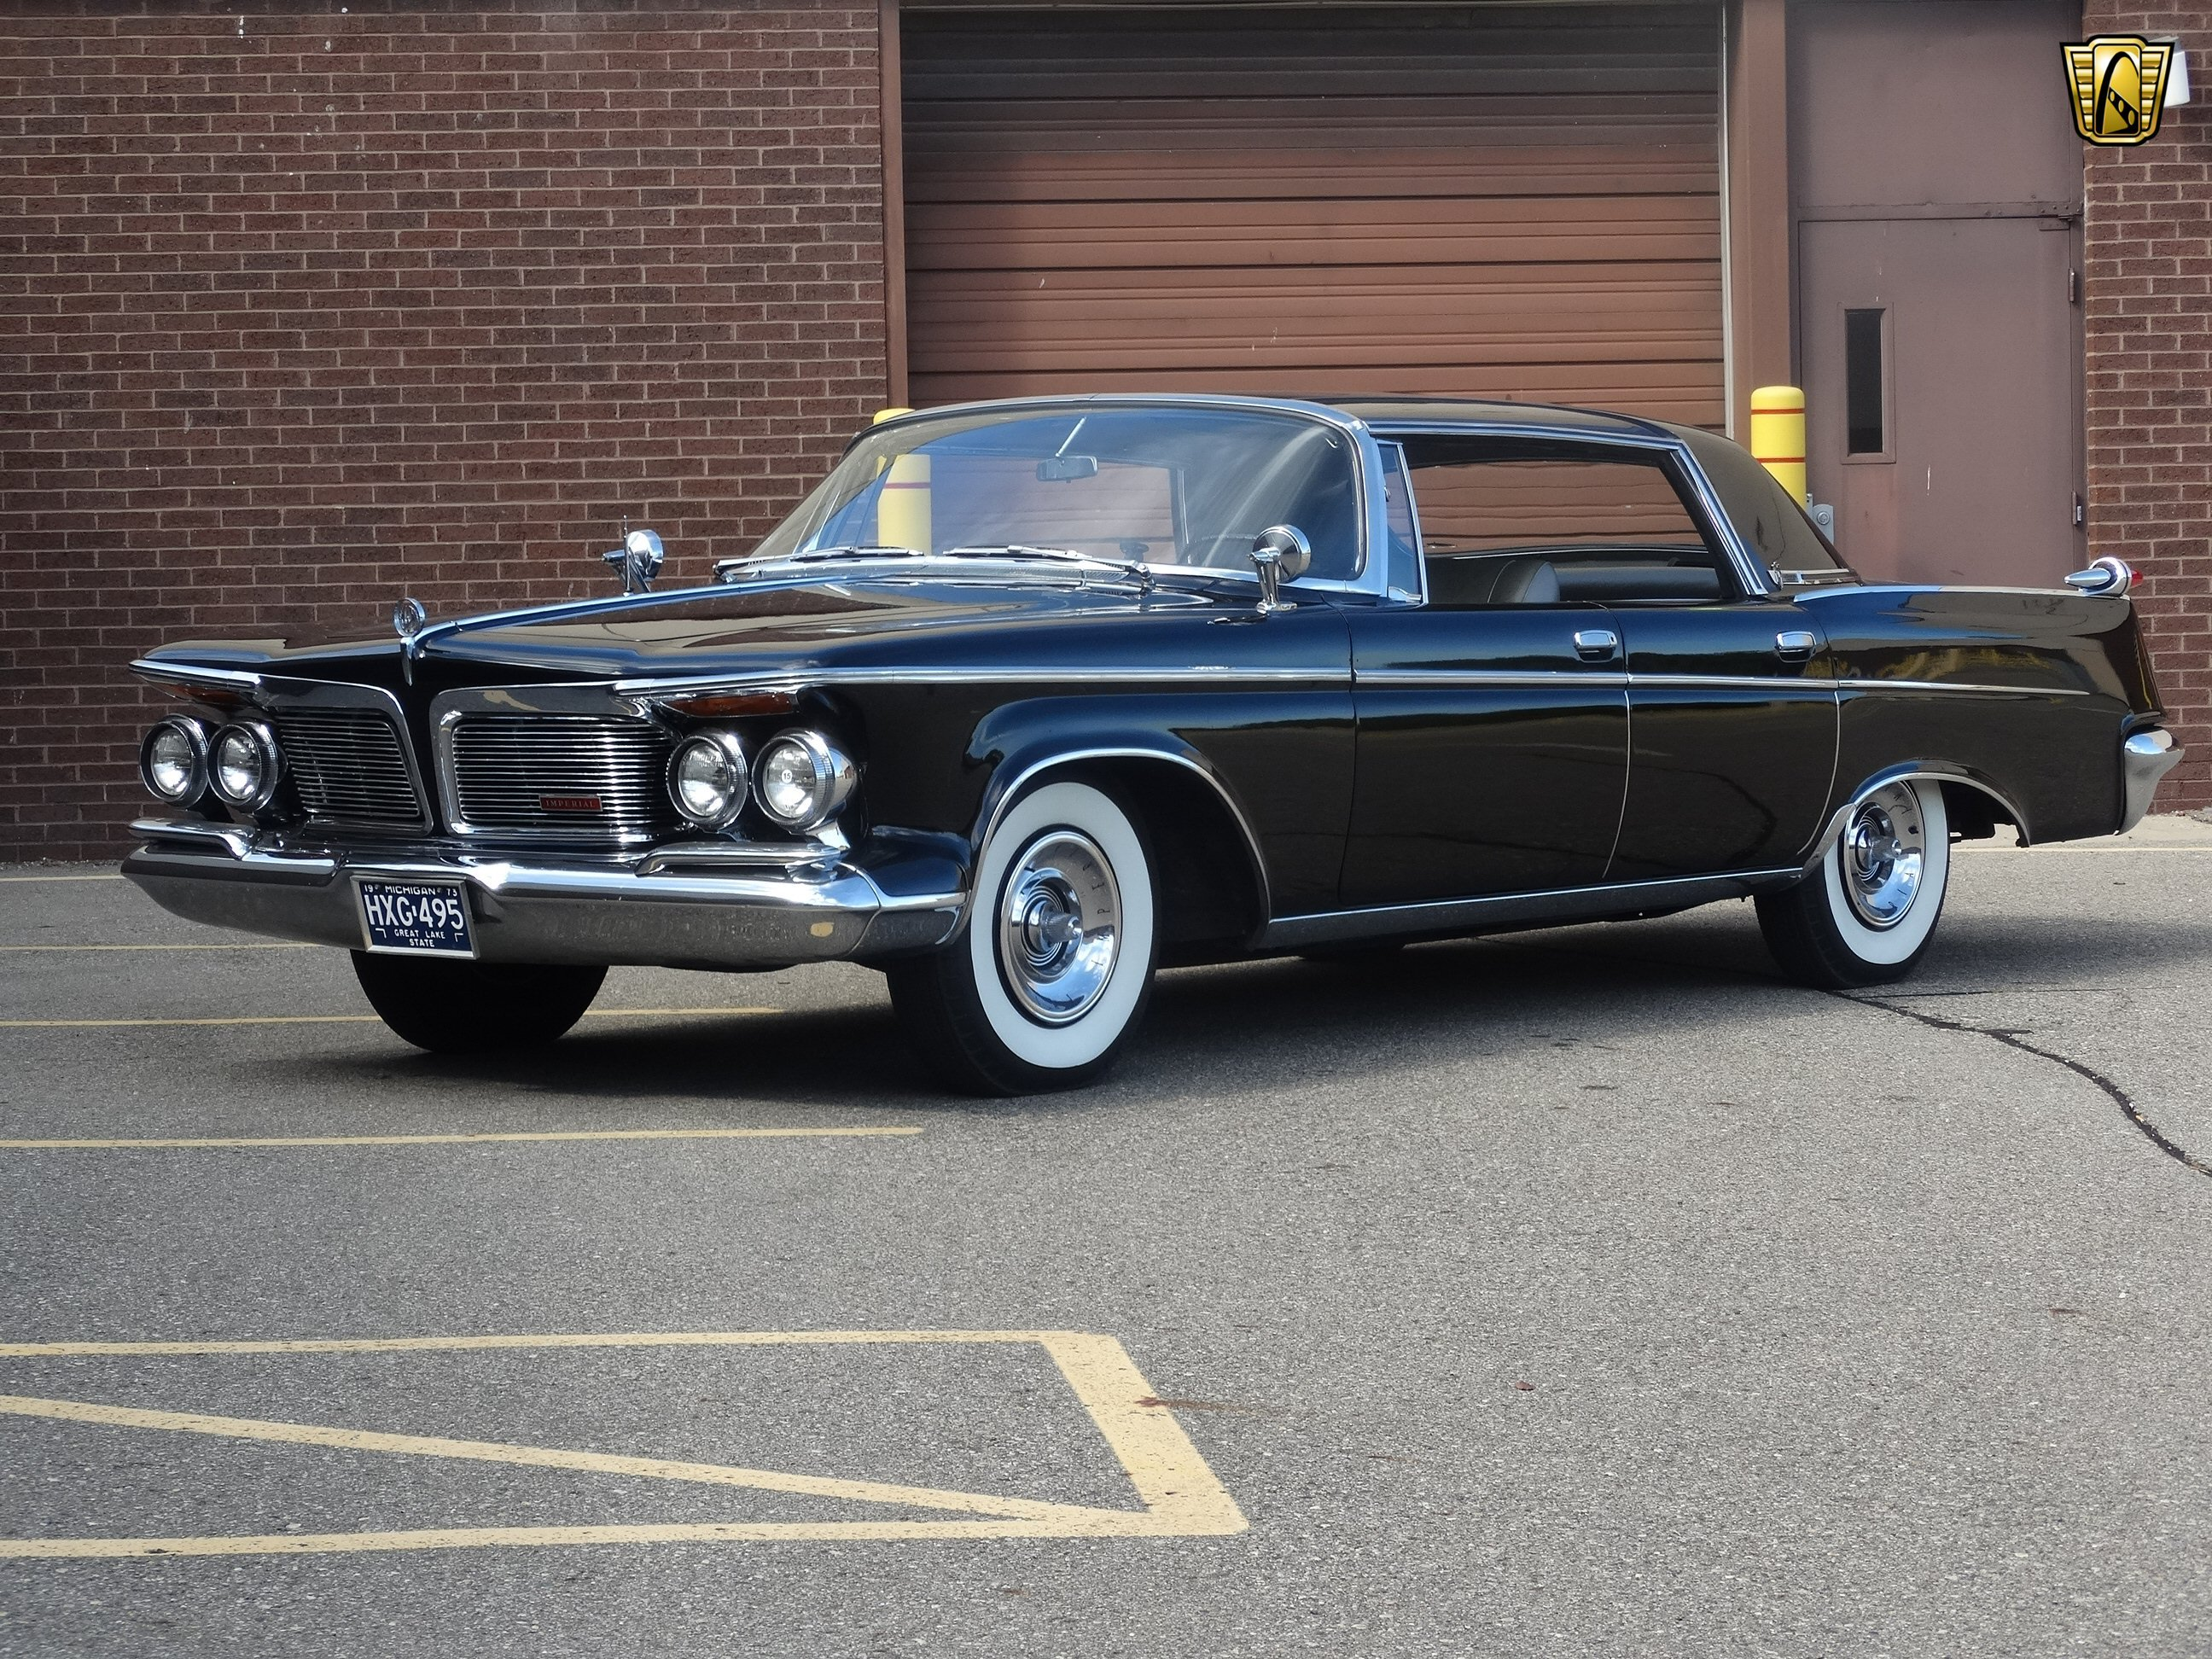 1962 chrysler imperial cars usa classic retro wallpaper 2592x1944 816077 wallpaperup